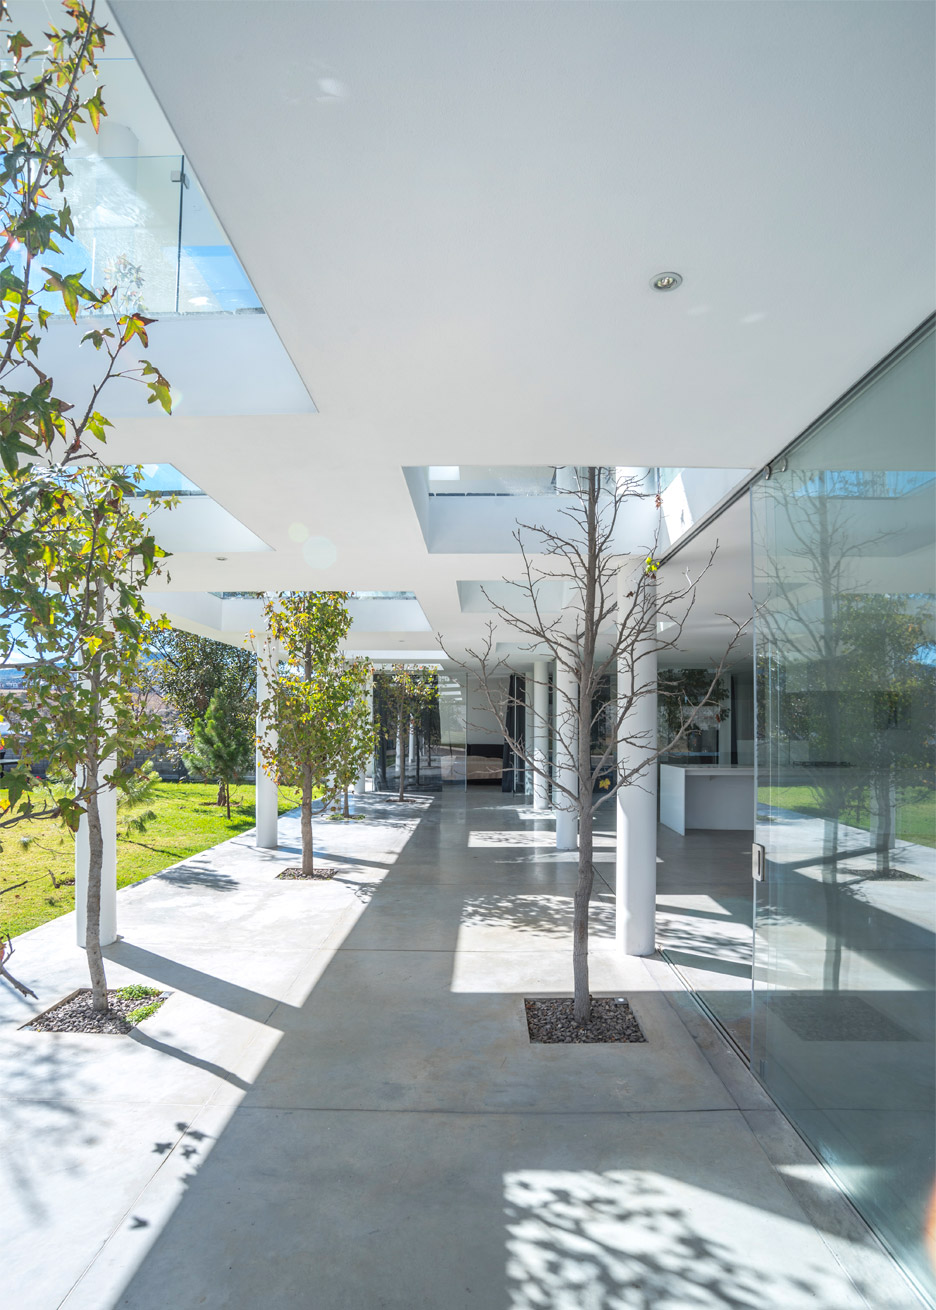 Julio Hernandez house by Roof Arquitectos, a white house in Mexico